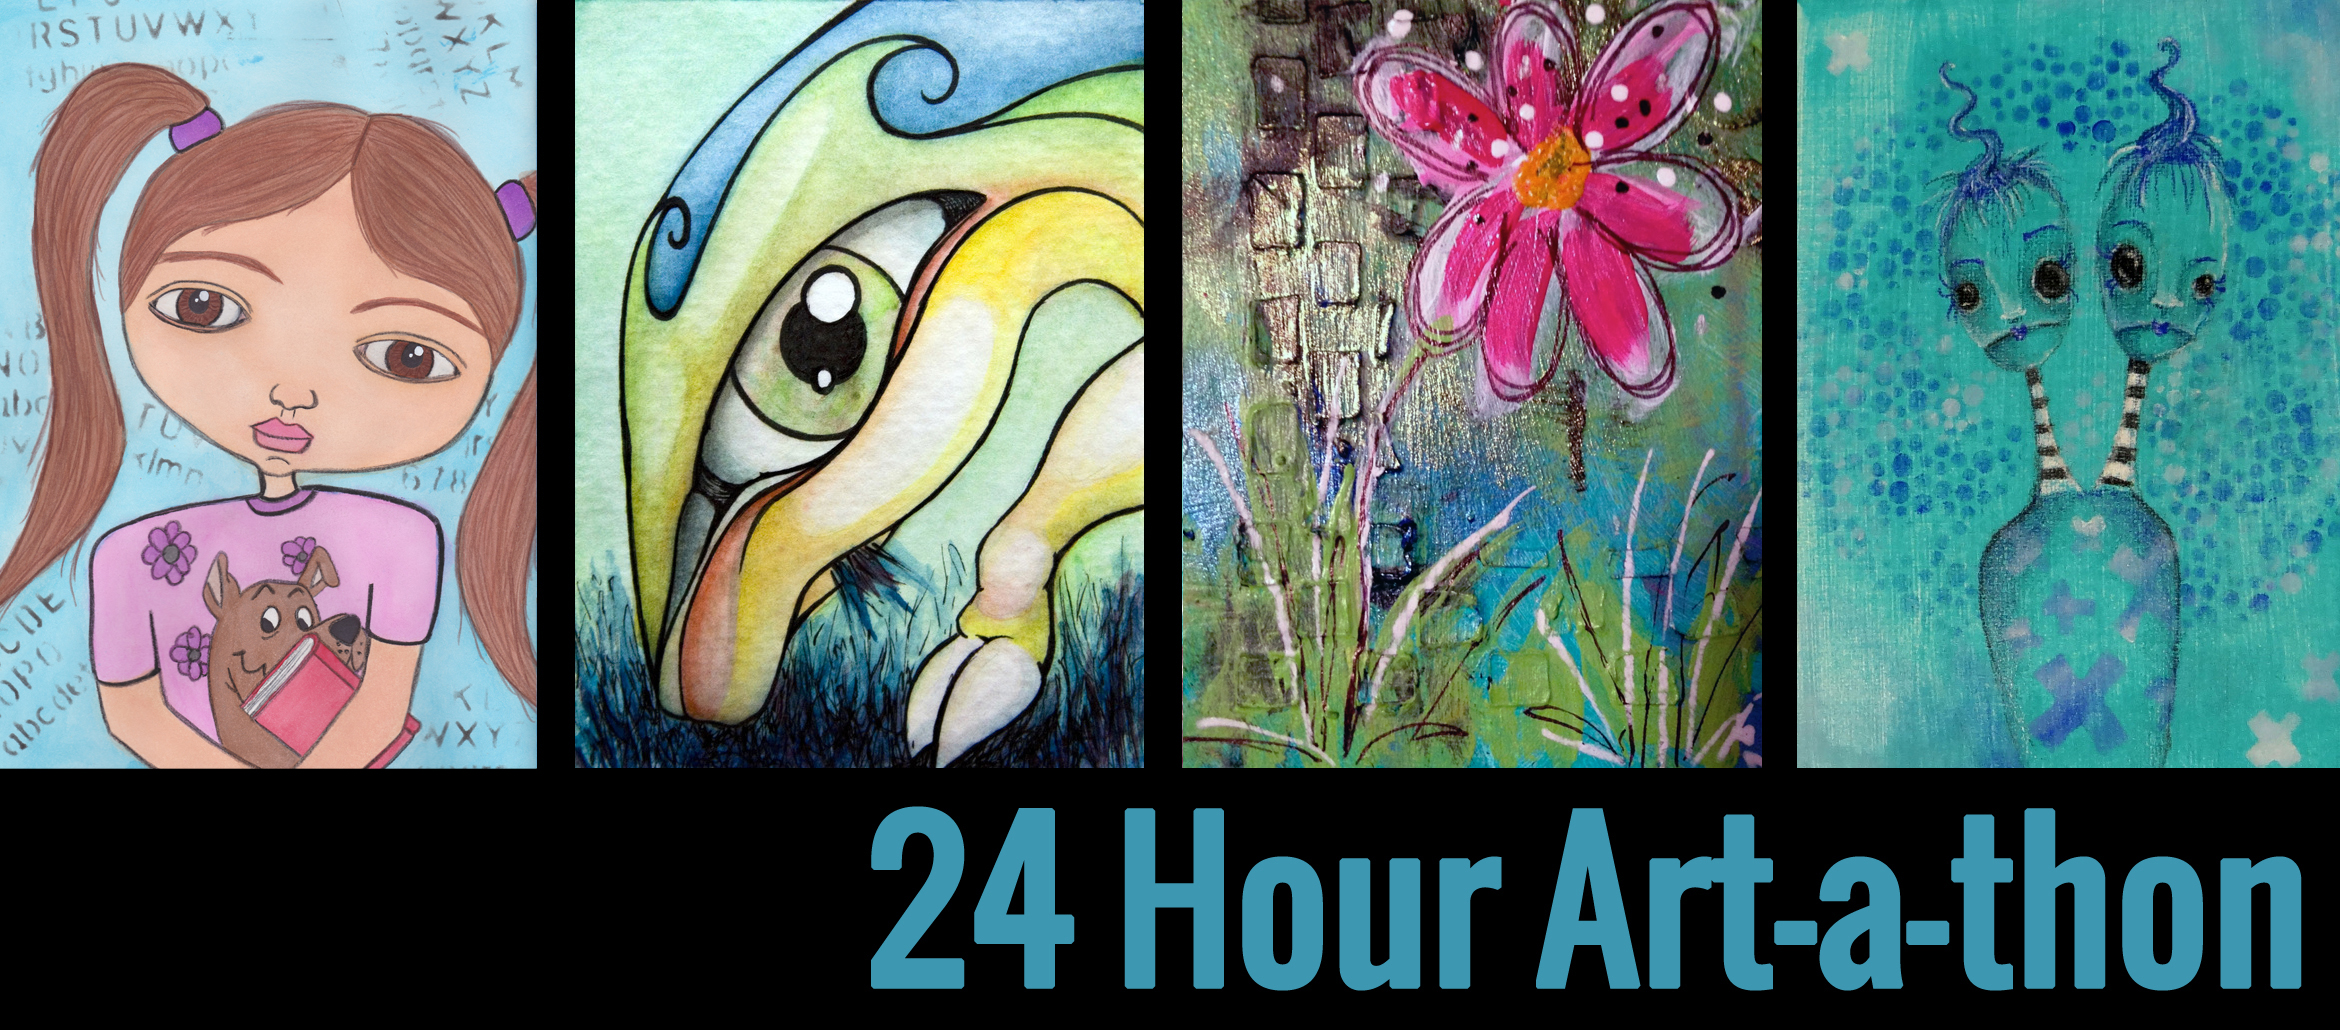 24 Hour Art-a-thon